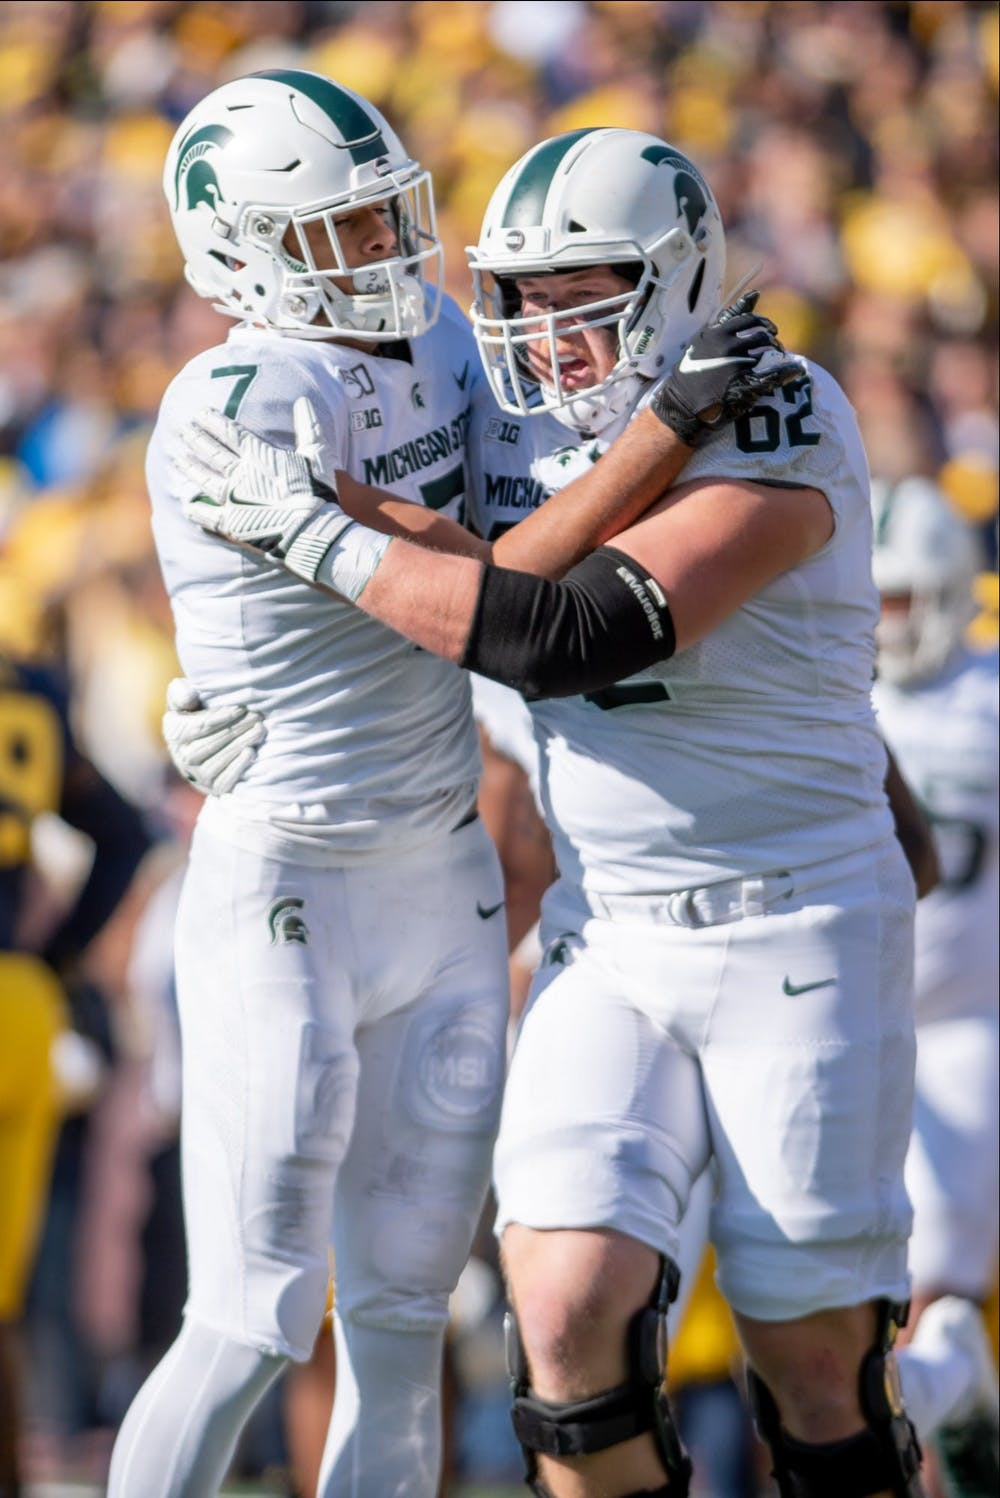 <p>Then-junior wide receiver Cody White (7) celebrates with then-junior offensive lineman Luke Campbell (62) during the game against Michigan Nov. 16, 2019 at Michigan Stadium. The Spartans fell to the Wolverines, 44-10.</p>